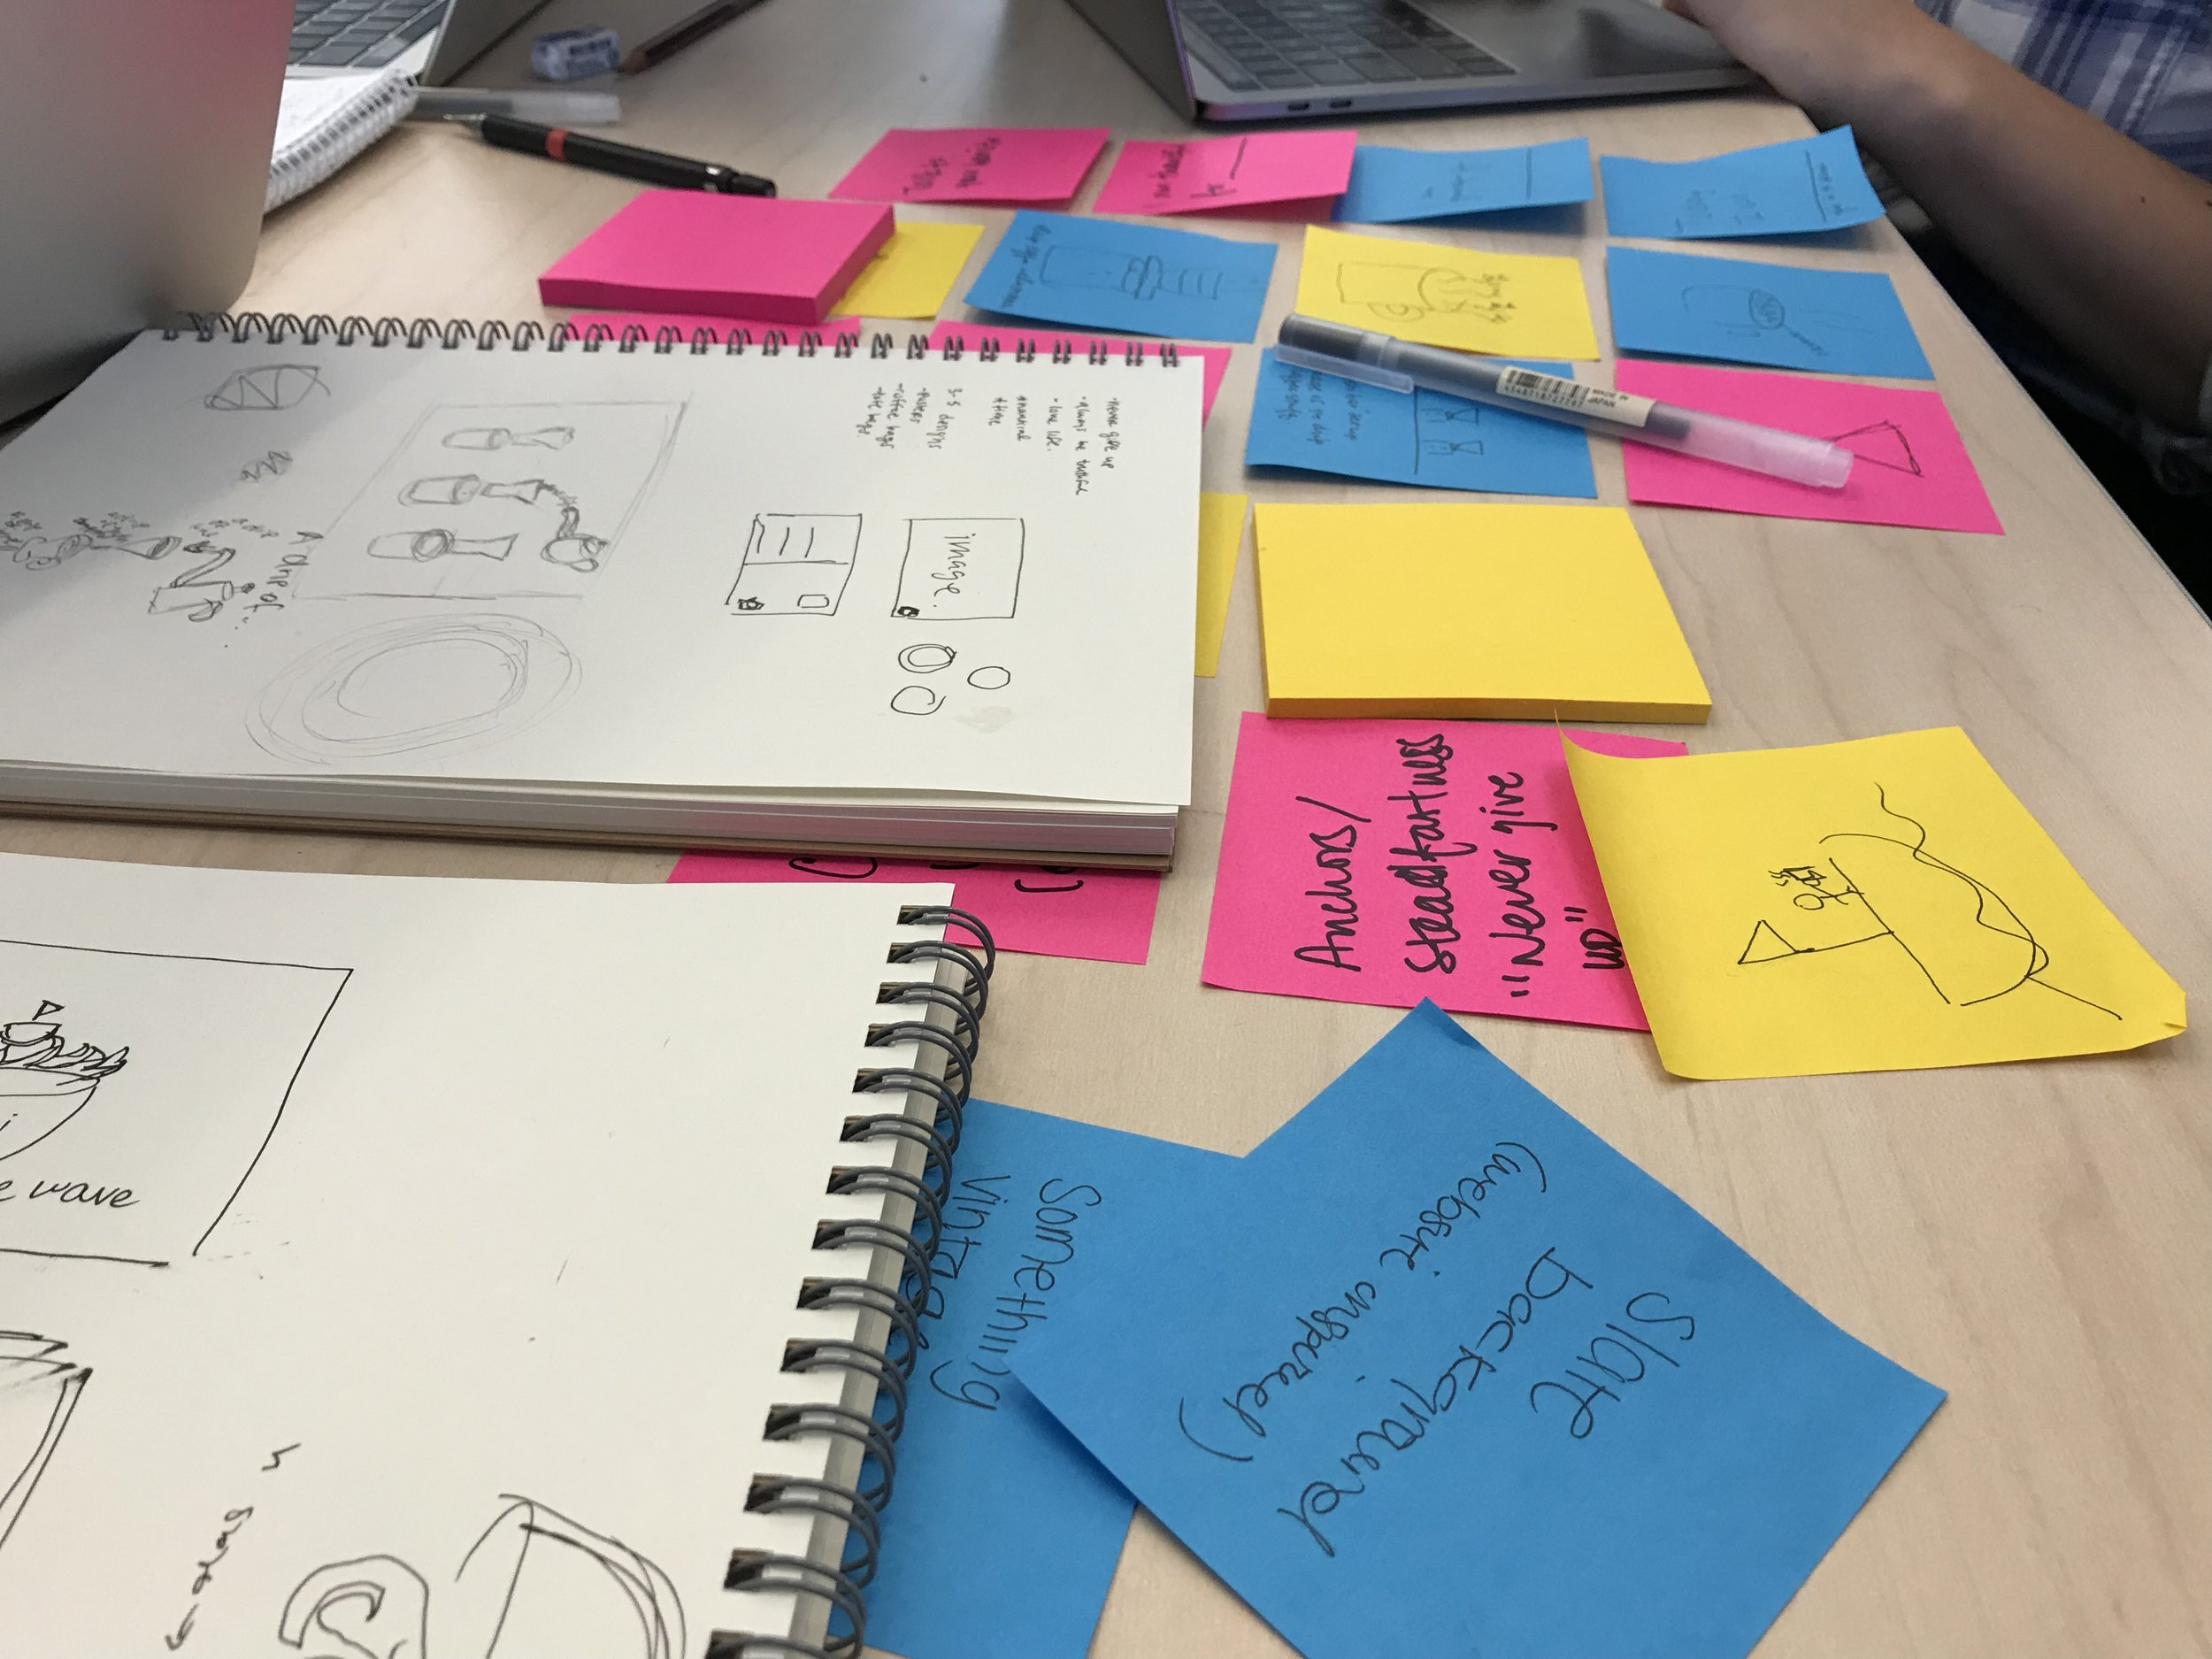 Hard at work merging our ideas and sketches into final designs.